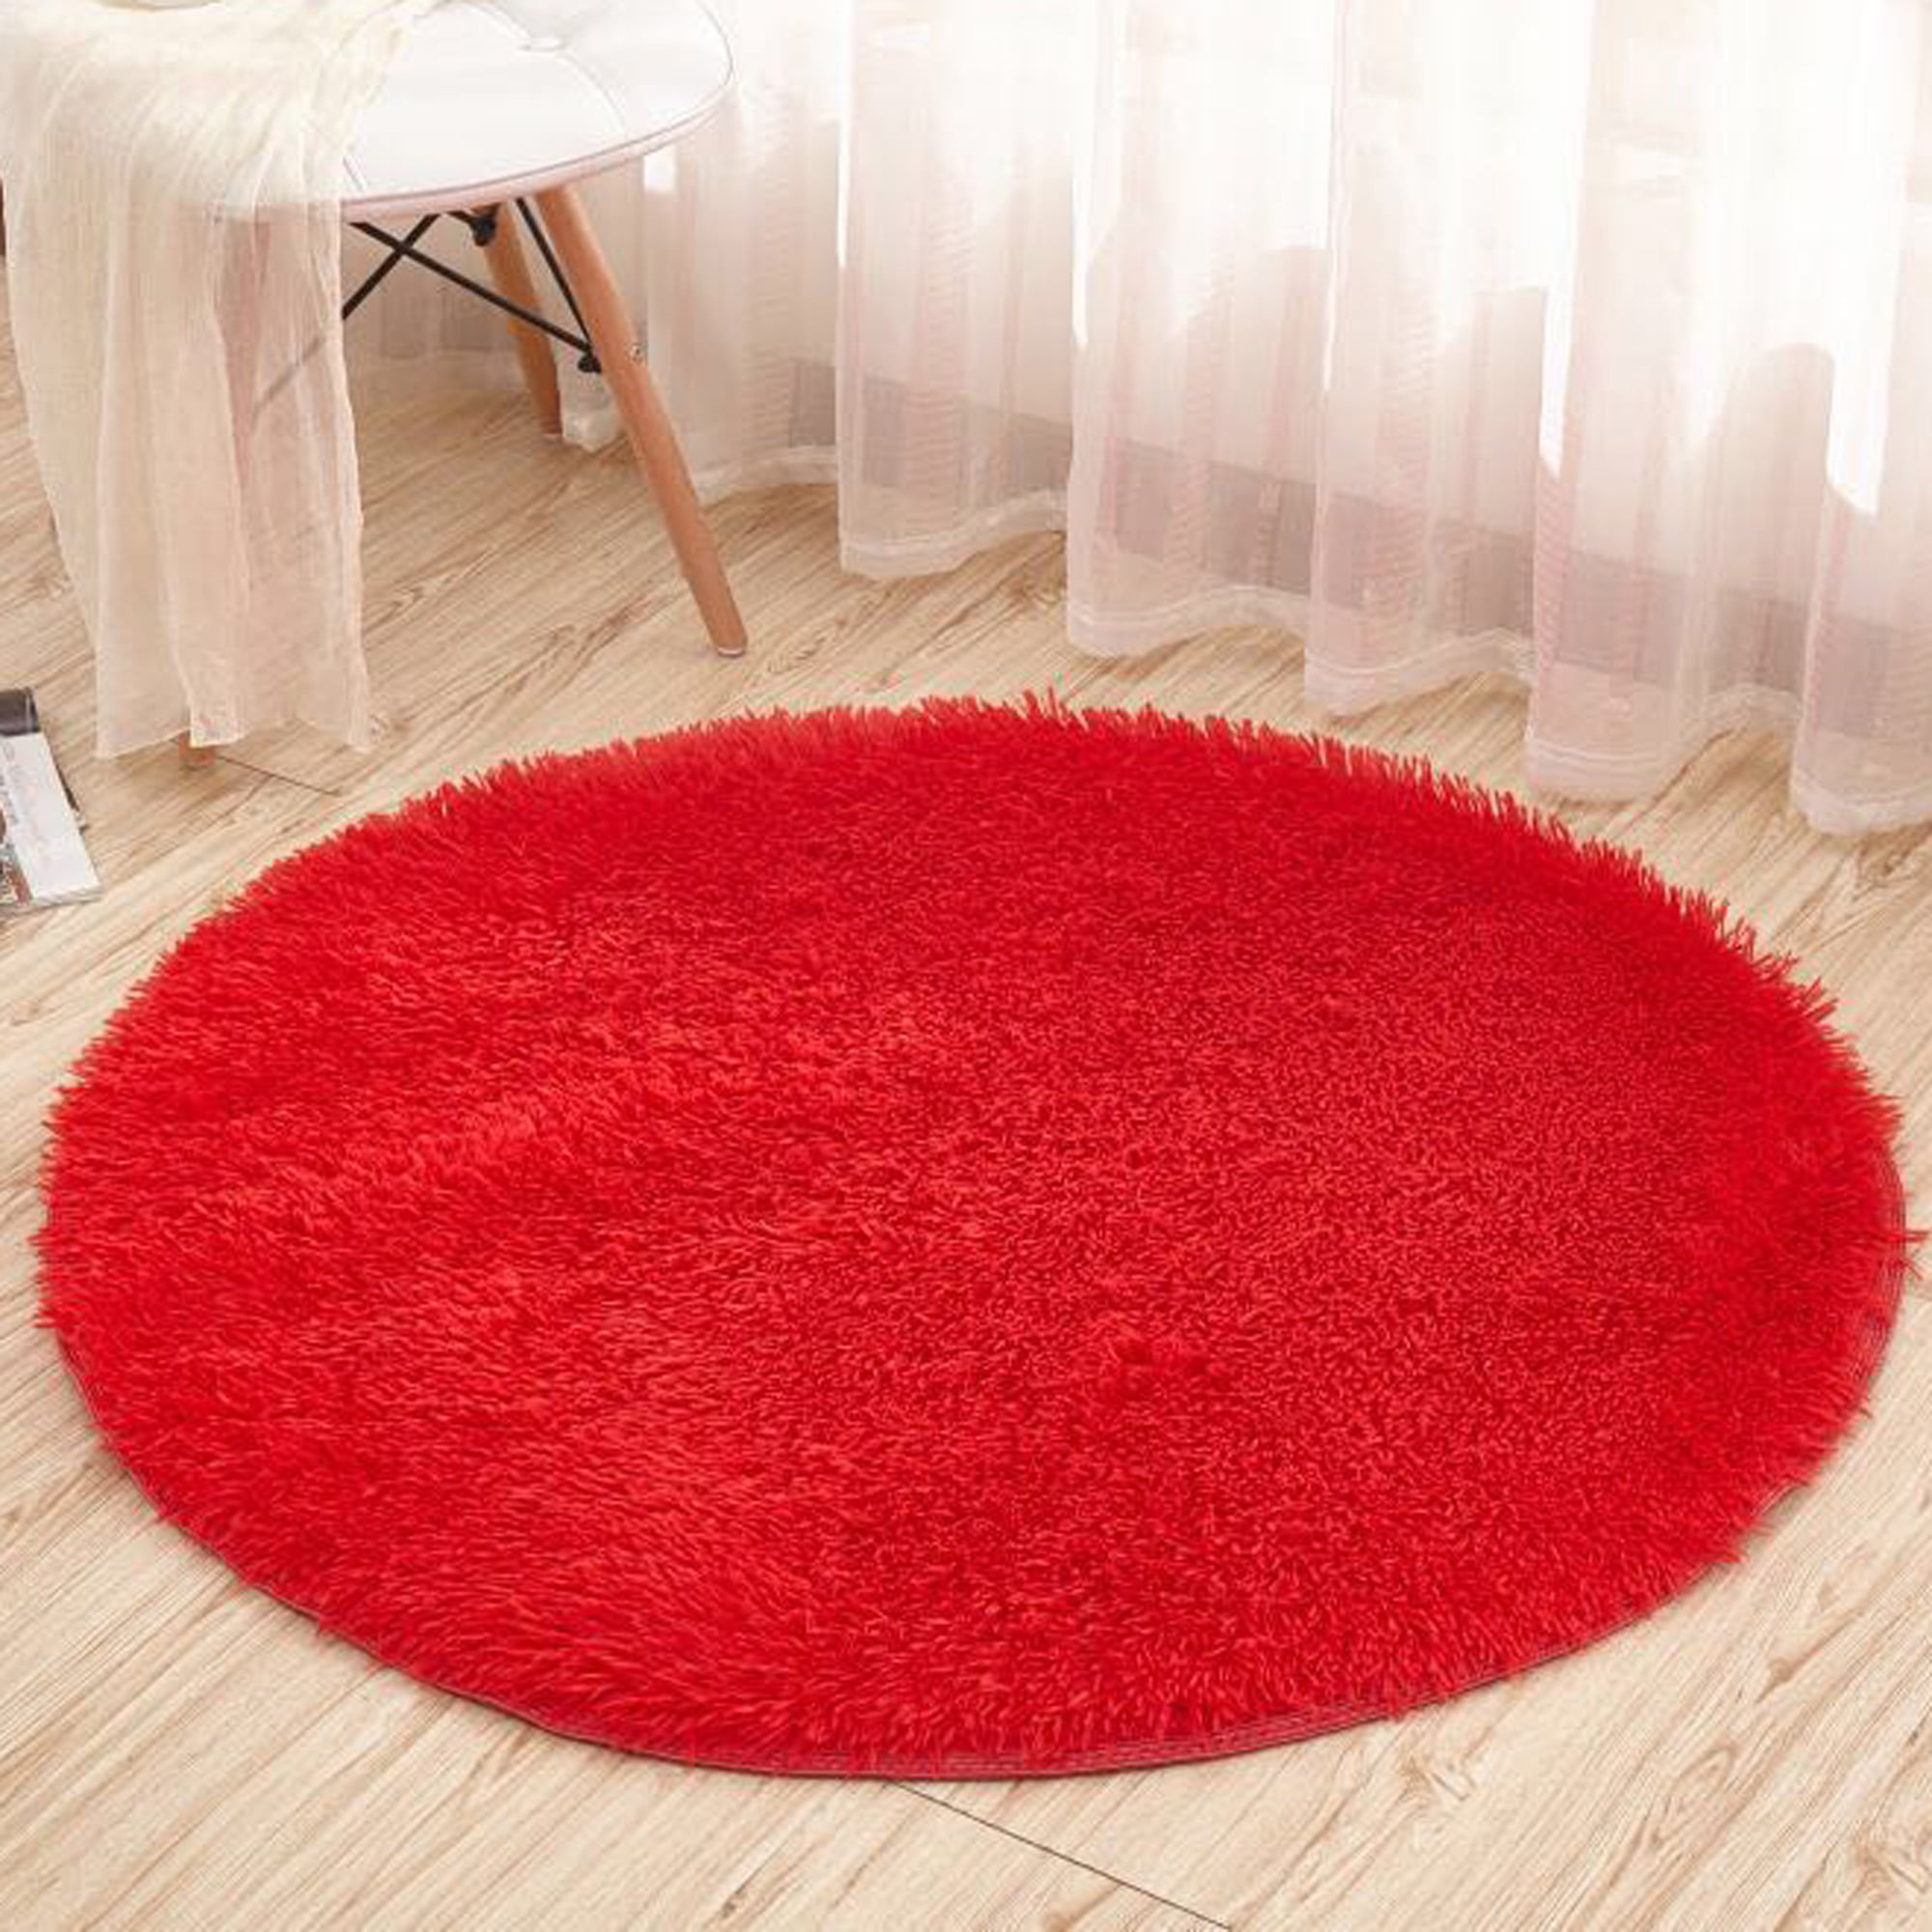 Picture of: Dodoing Super Soft Round Area Rugs For Bedroom Kids Rooms Living Room Playroom Fluffy Boys Girls Baby Kids Children Rugs For Bedroom Home Nursery D Cor Carpet For Women Pink Red Blue White